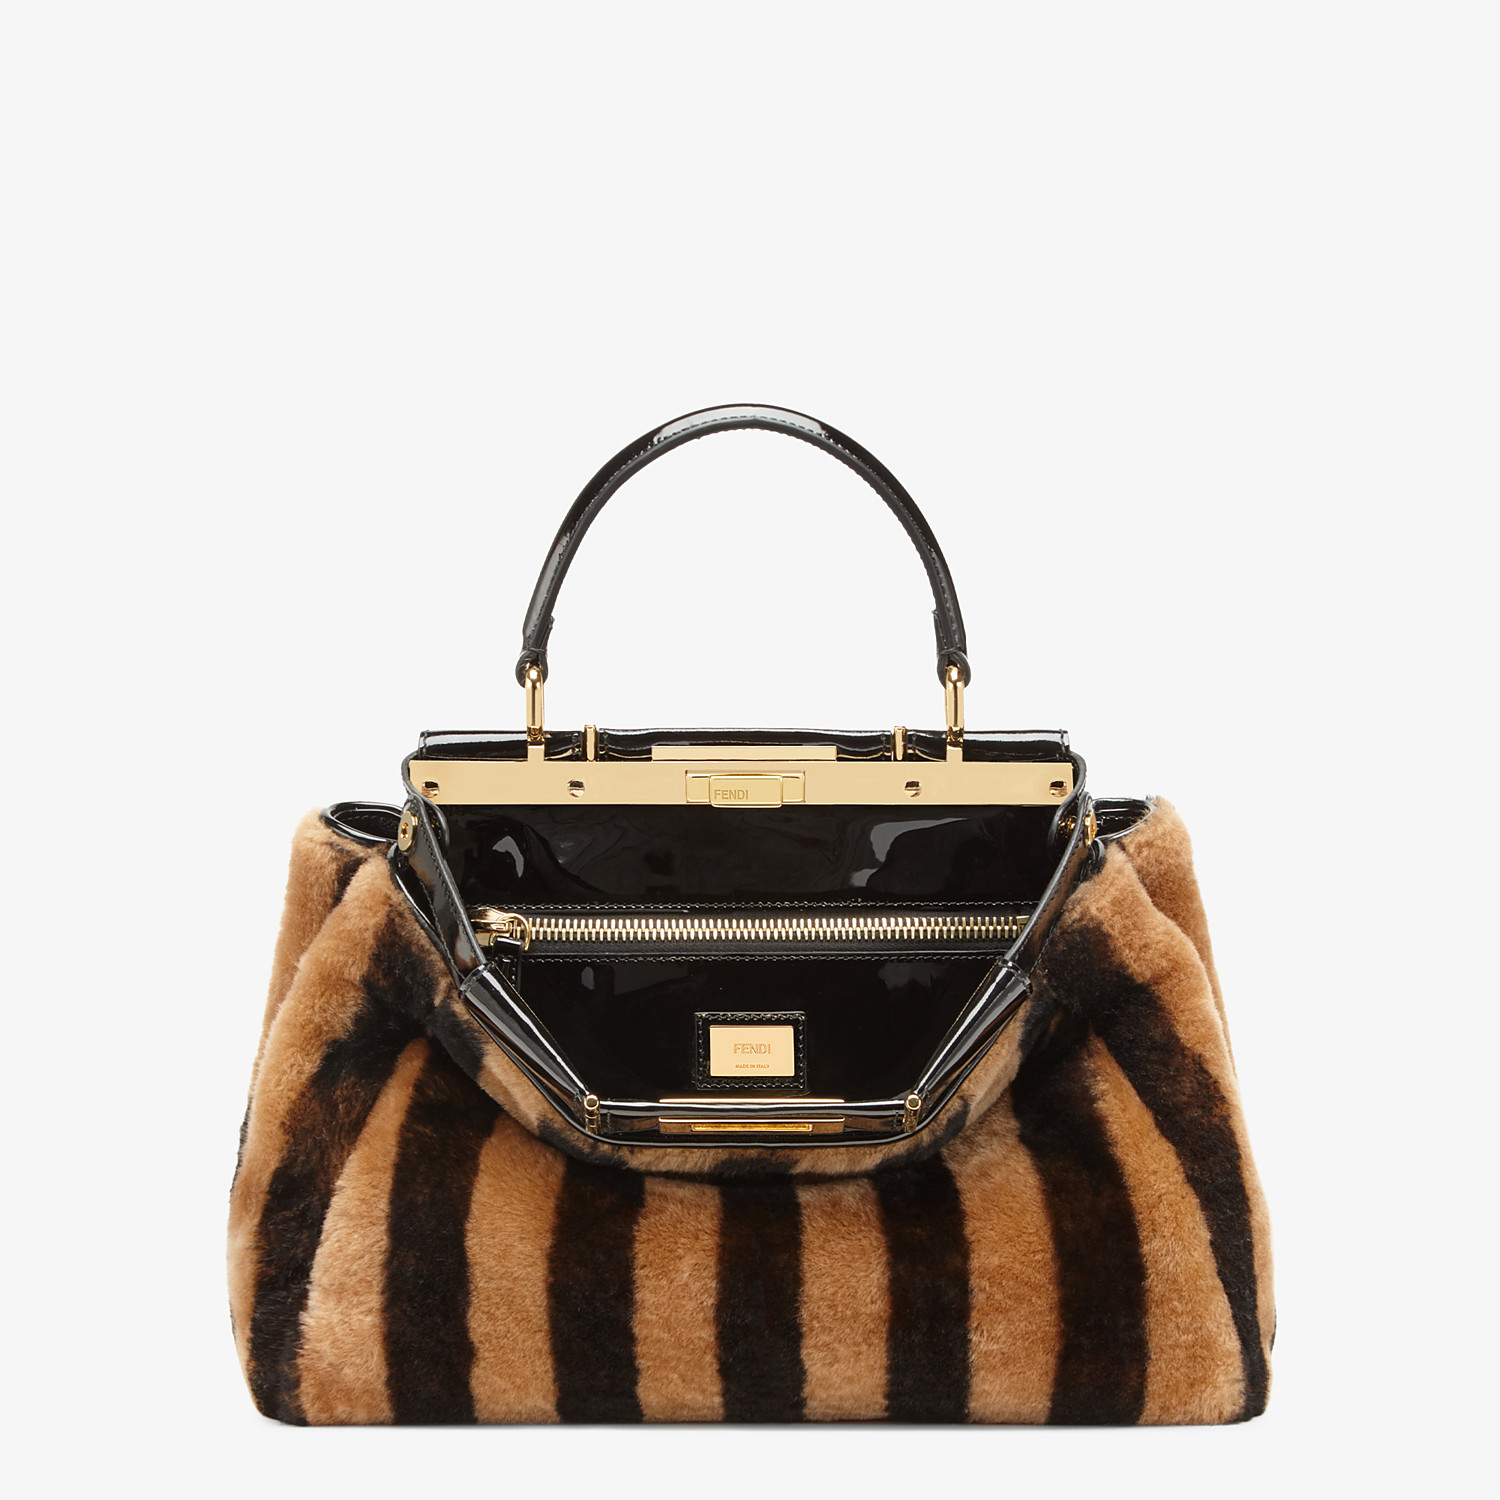 FENDI PEEKABOO ICONIC MEDIUM - Borsa in montone e vinile multicolor - vista 1 dettaglio